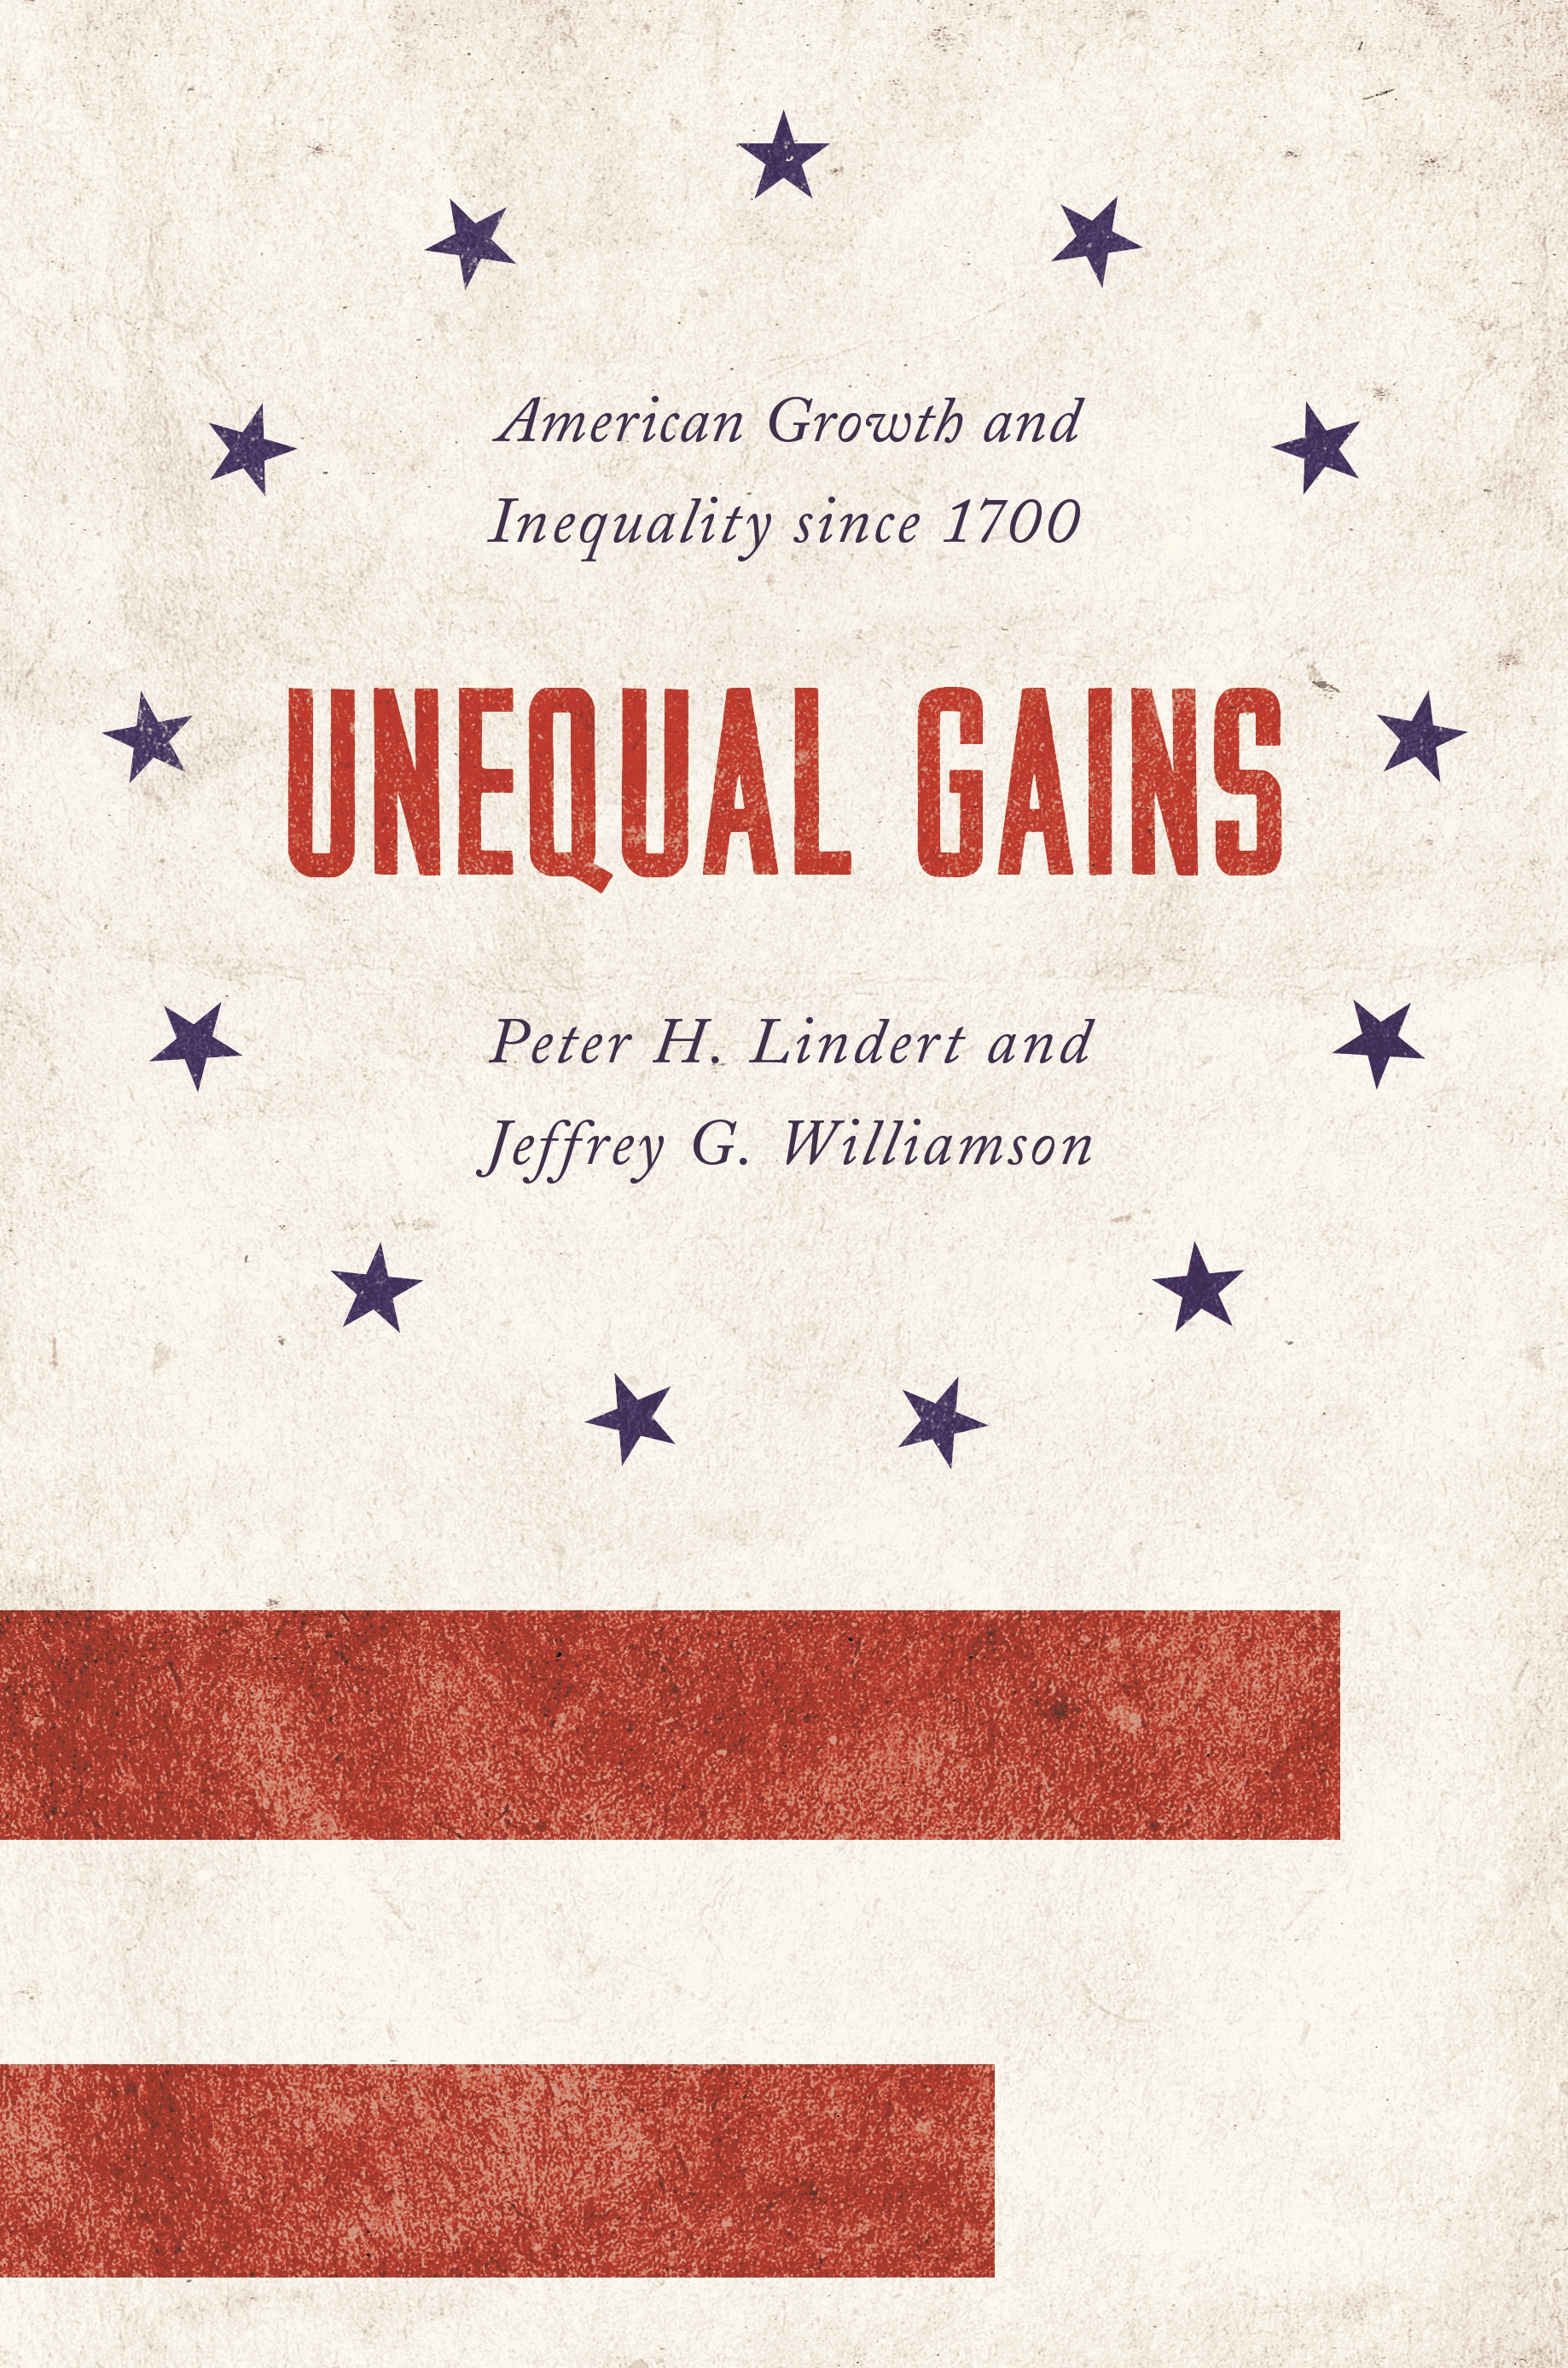 Download Ebook Unequal Gains by Peter H. Lindert Pdf